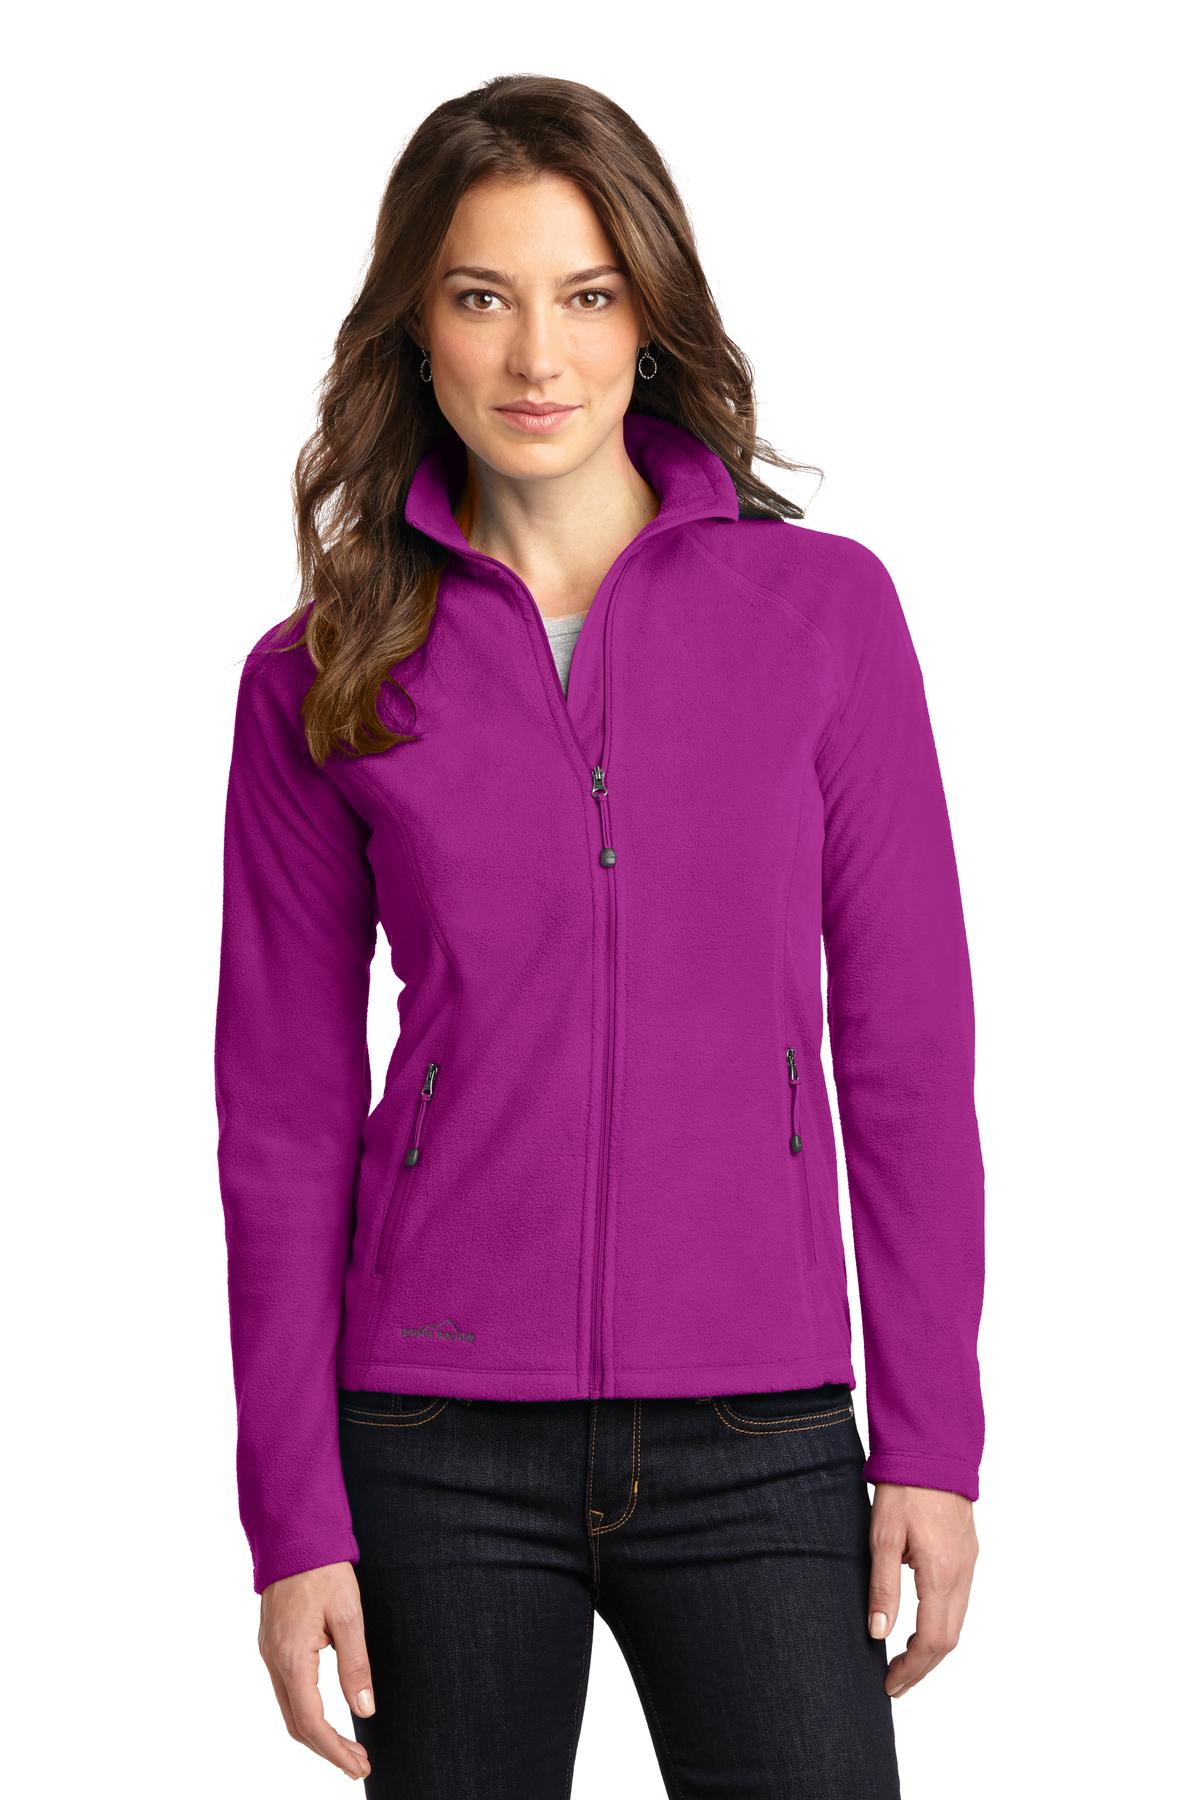 Ladies Full-Zip Microfleece Jacket